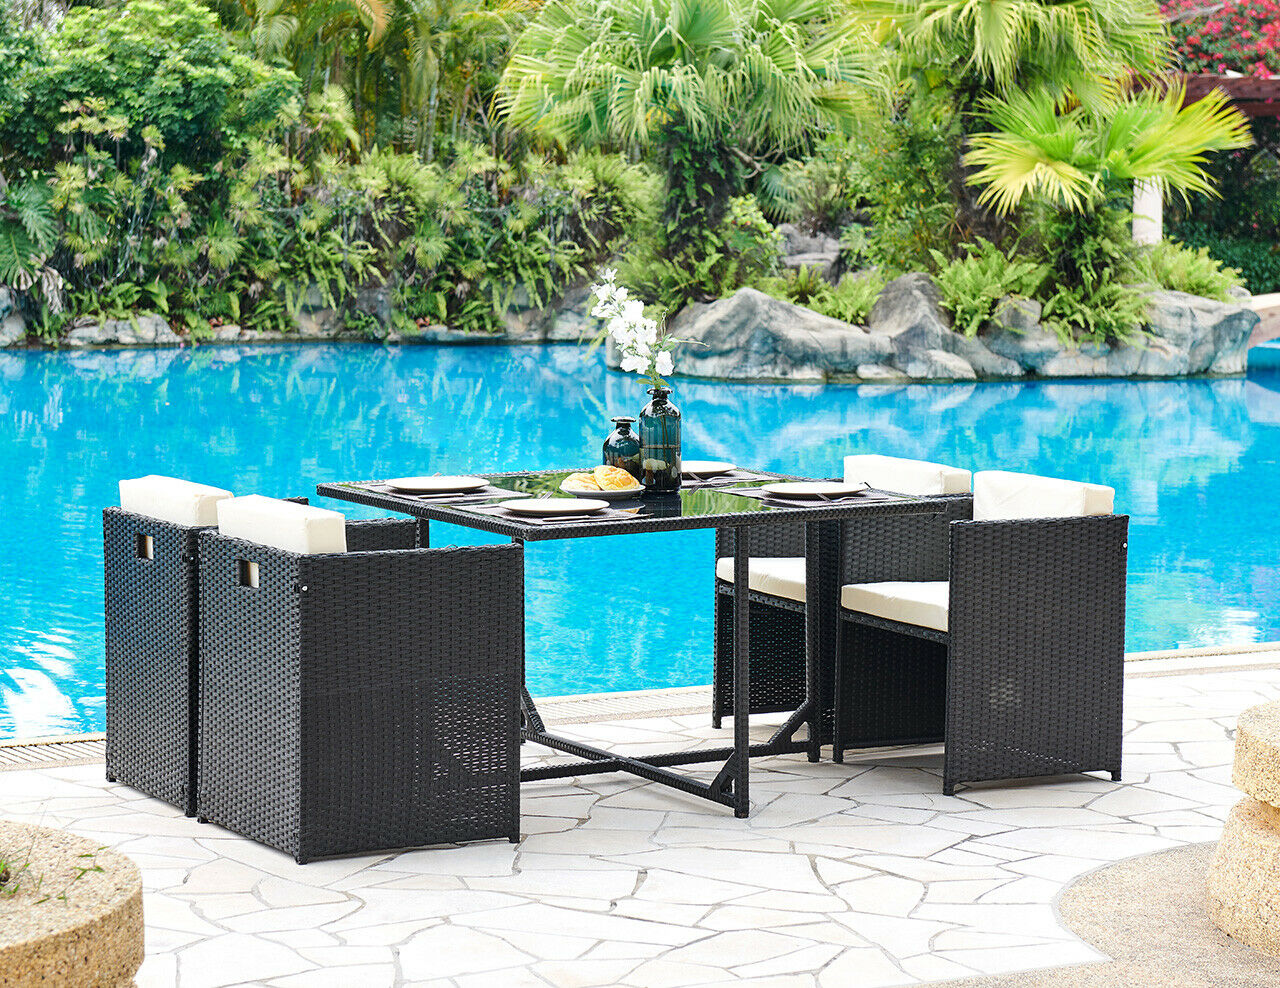 Garden Furniture - Cube Rattan Dining Set Black Grey or Brown Outdoor Garden Furniture Set 5pc